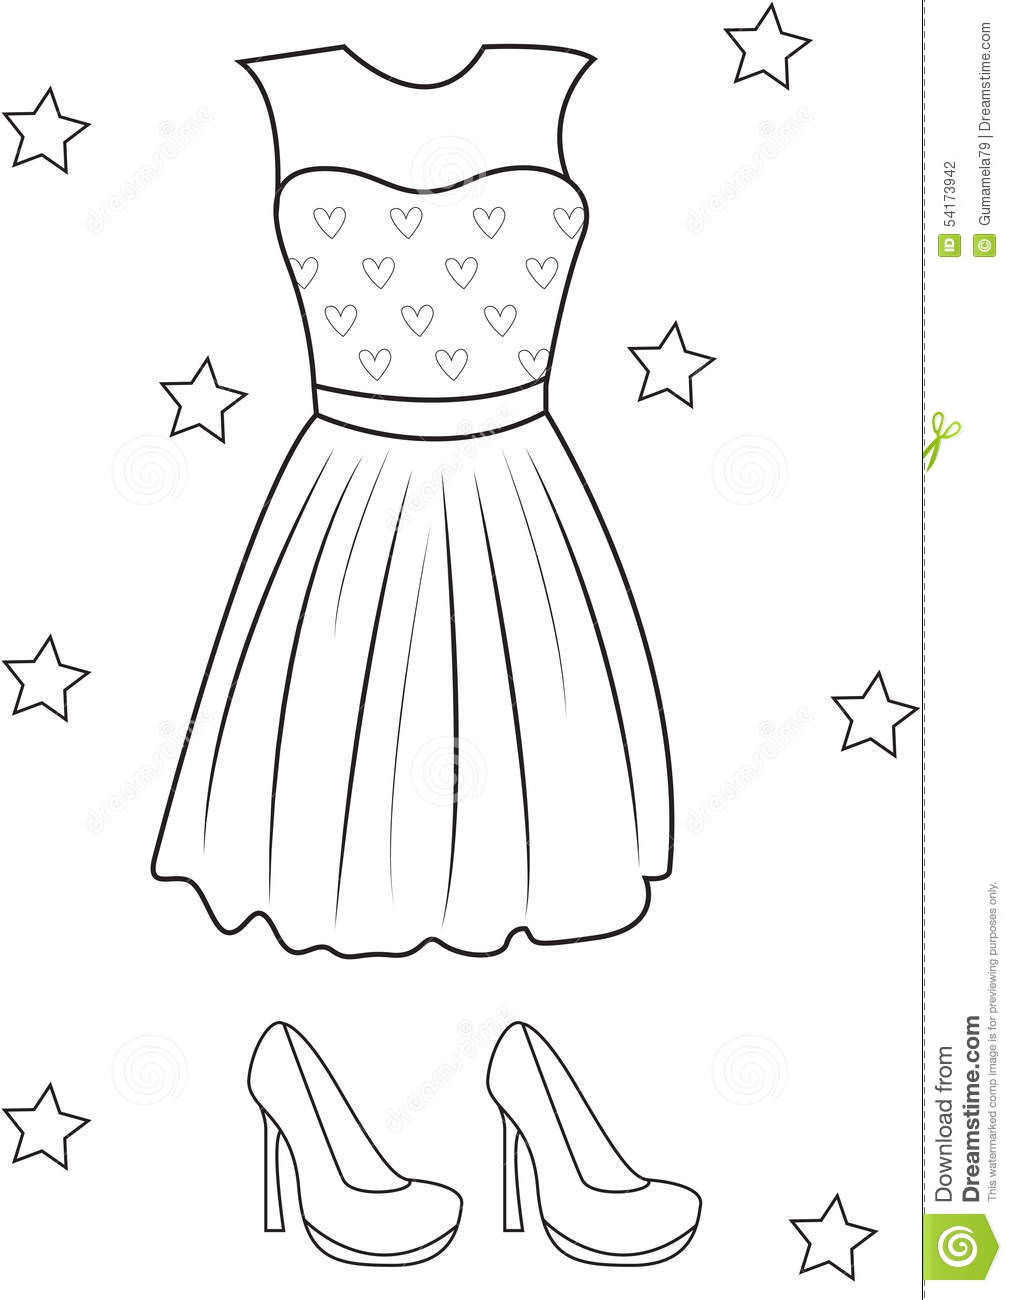 Coloring pages girls dresses for Dress coloring pages for girls